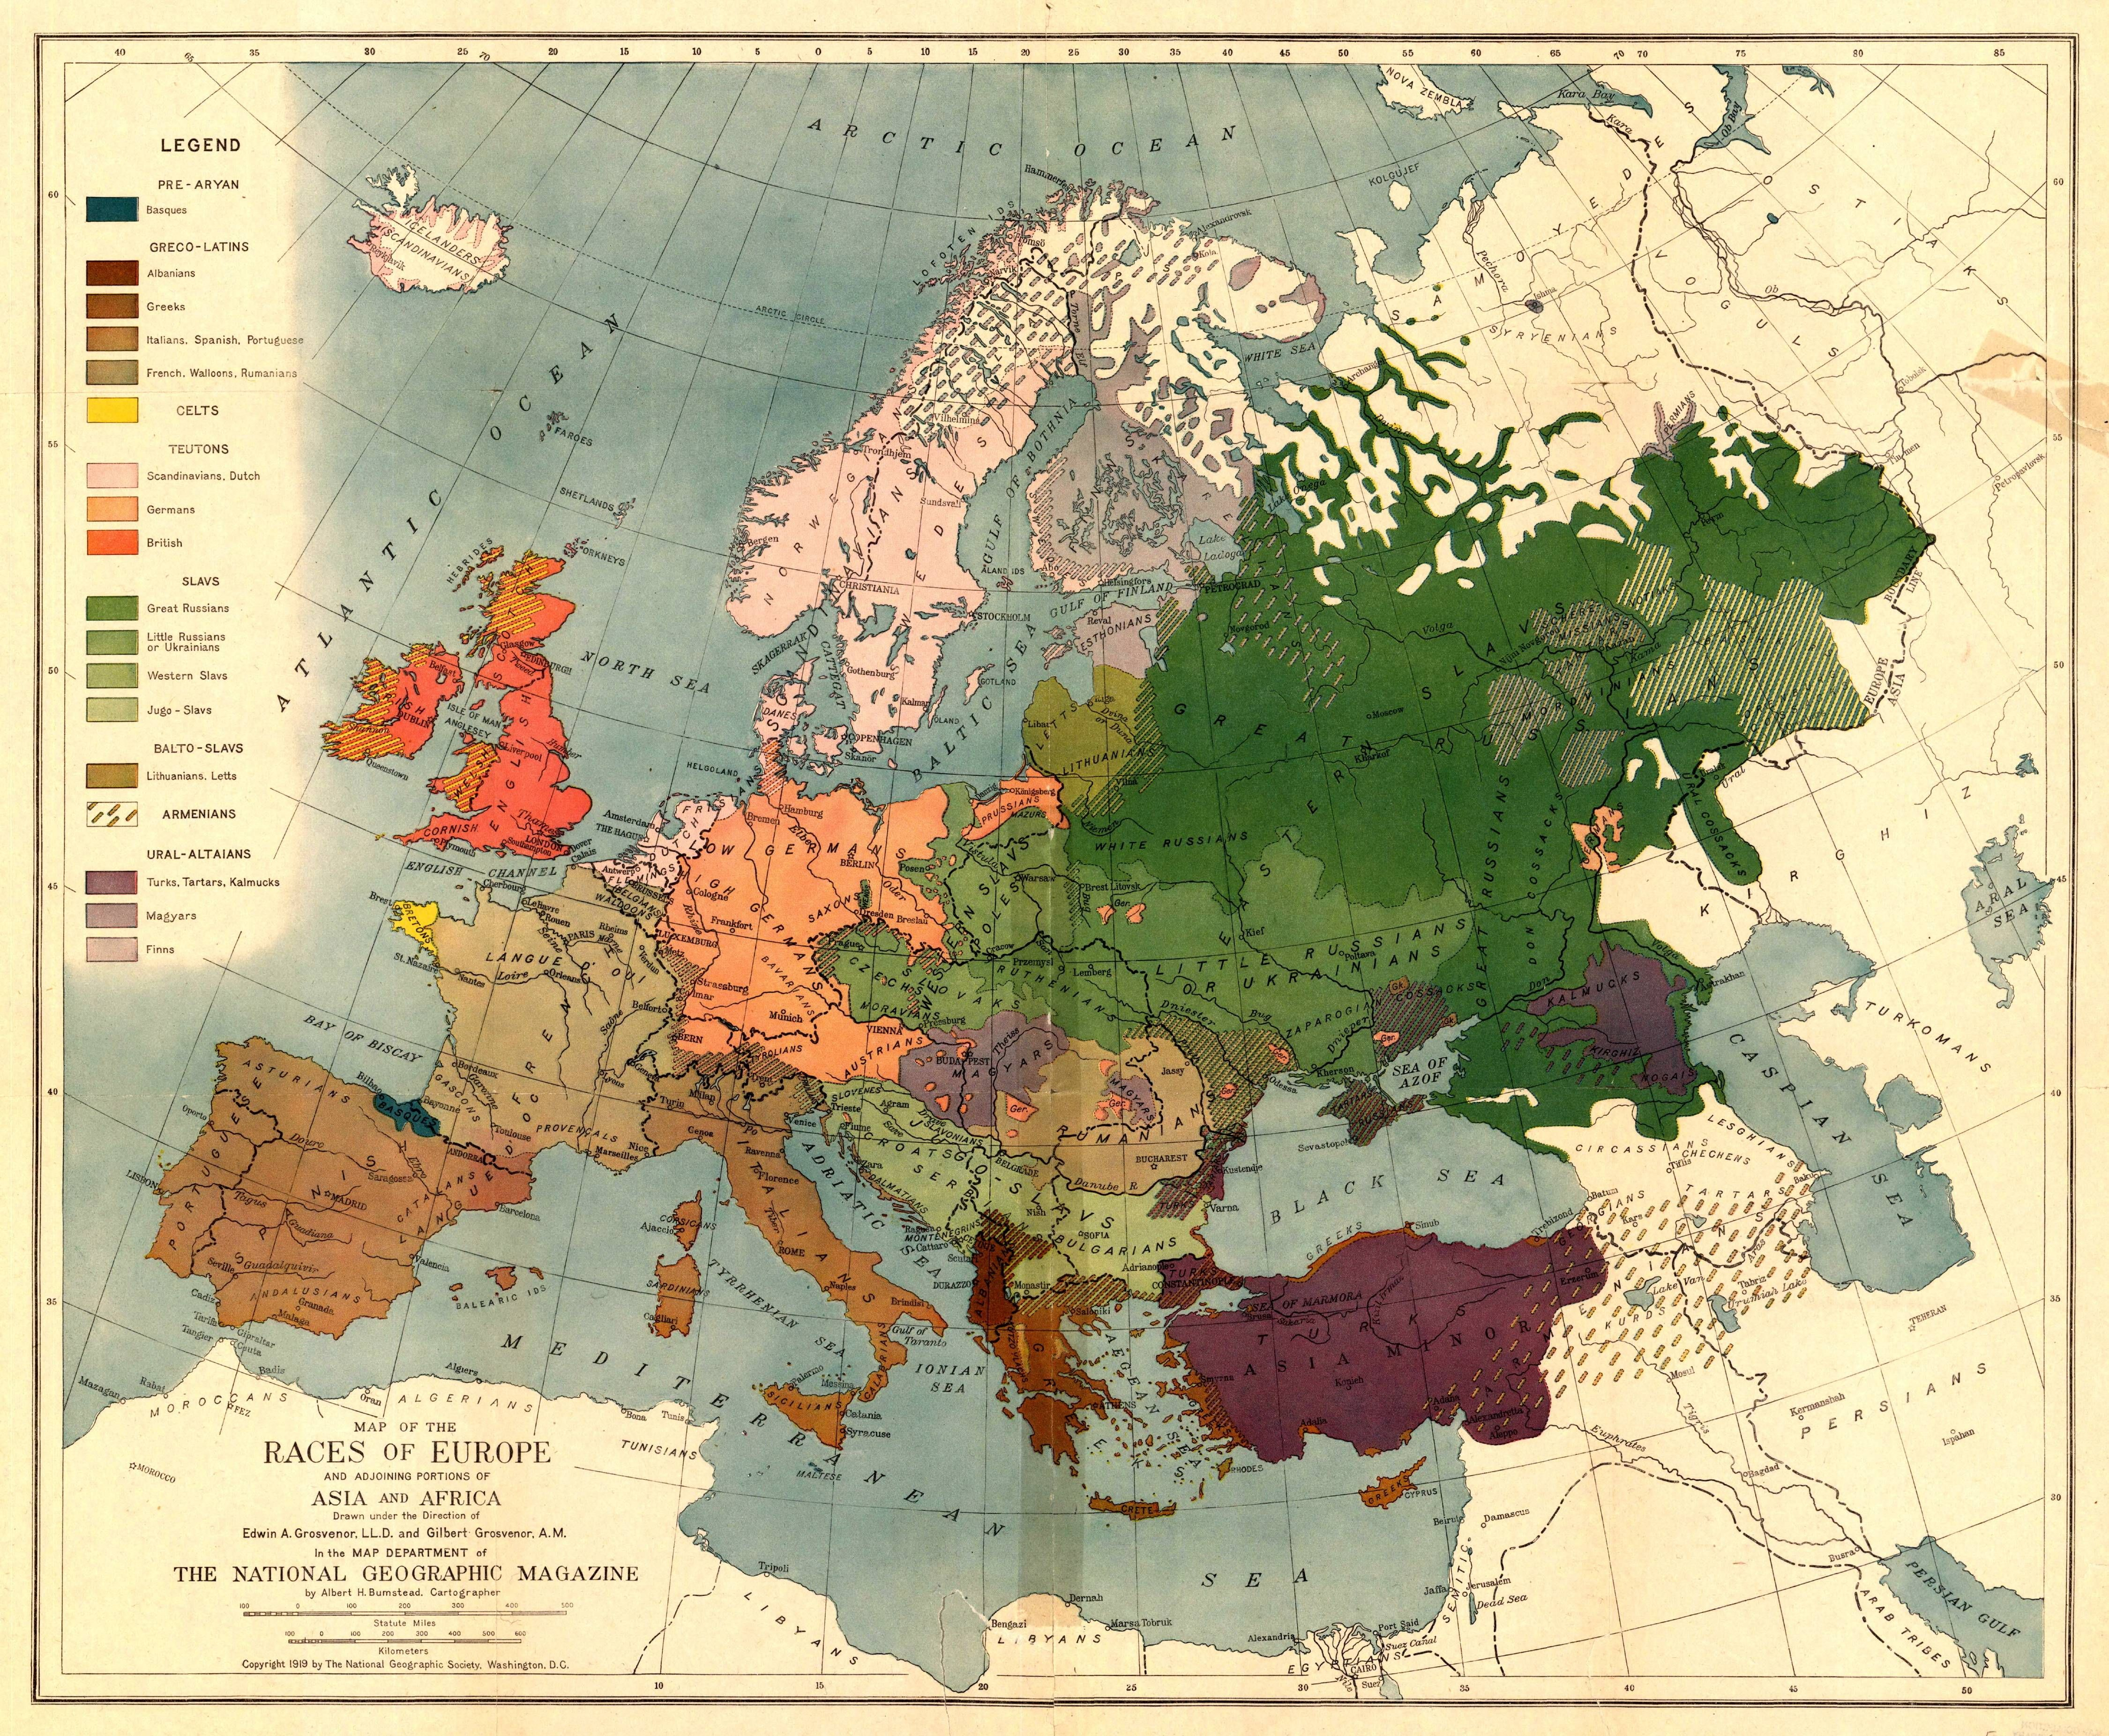 1919 National Geographic Magazine Map of the Races of Europe